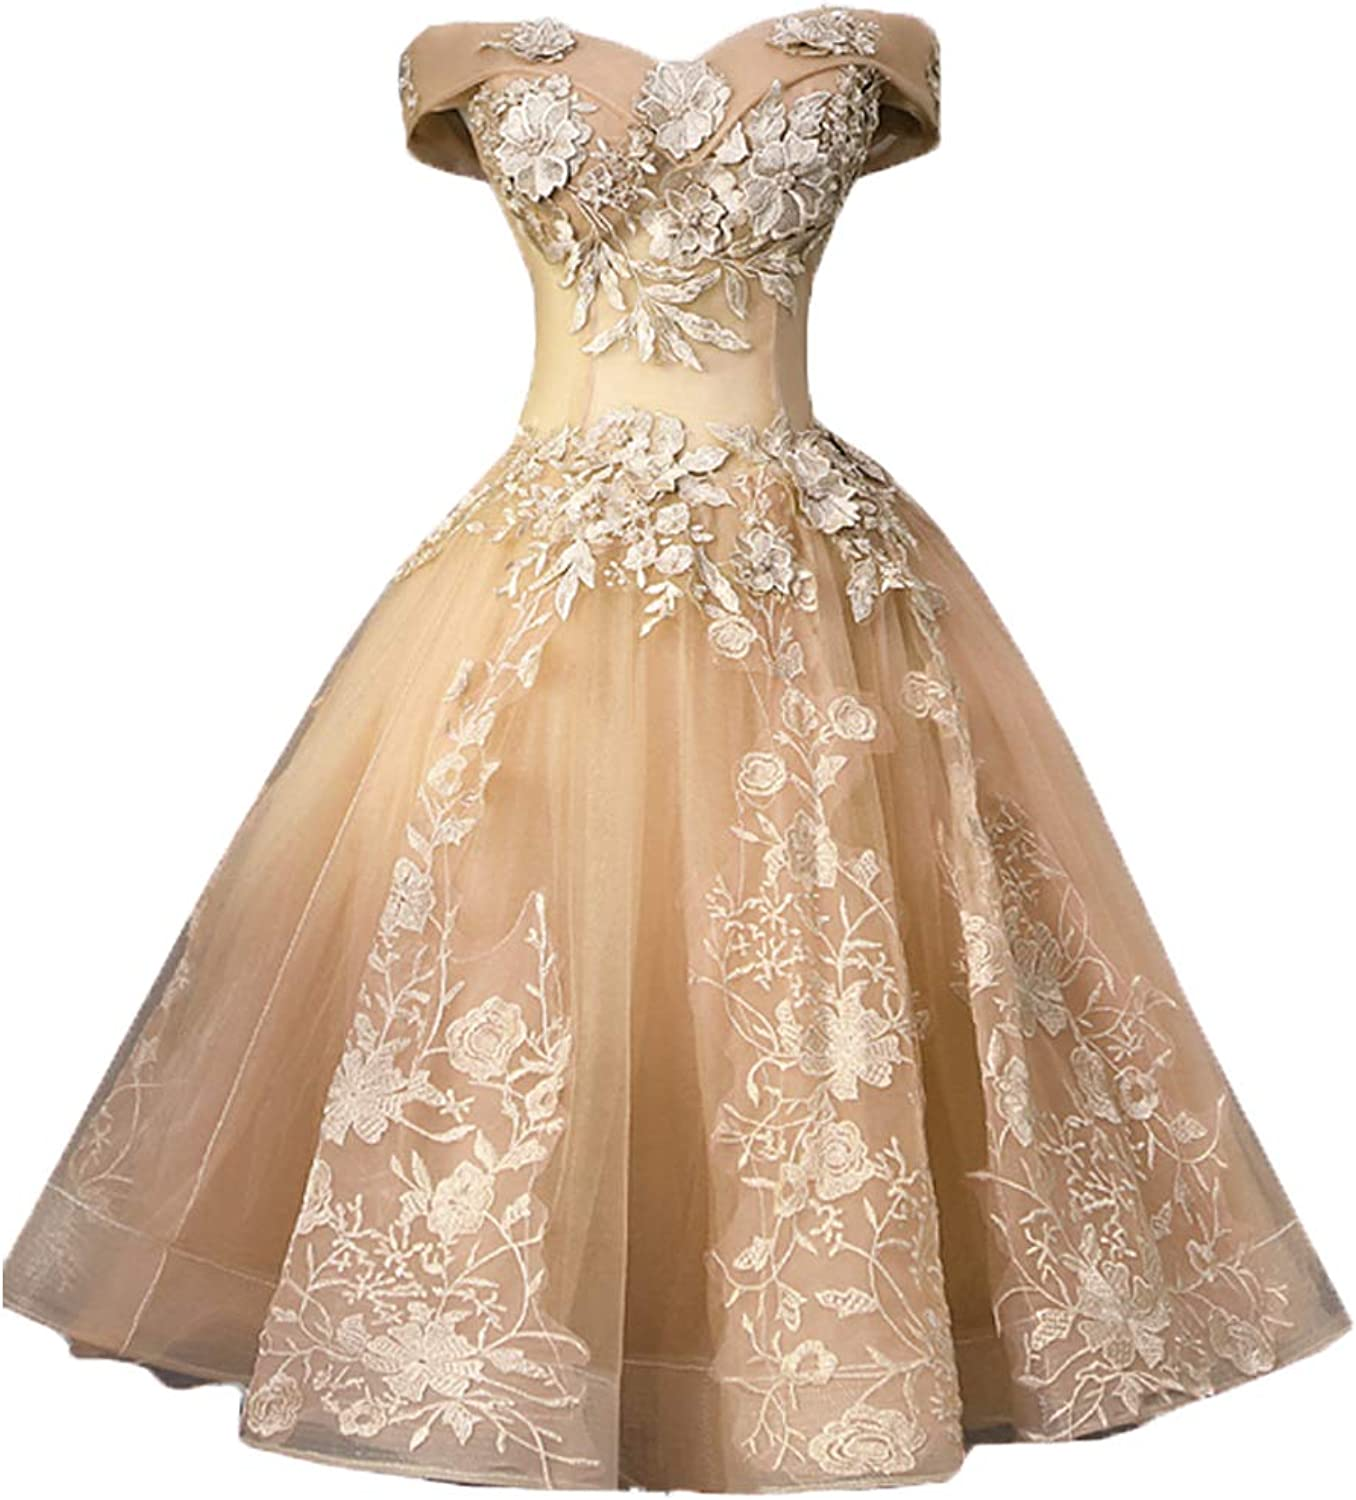 EieenDor Lace Appliques Short Quinceanera Dresses Black Knee Length Formal Cocktail Homecoming Dresses